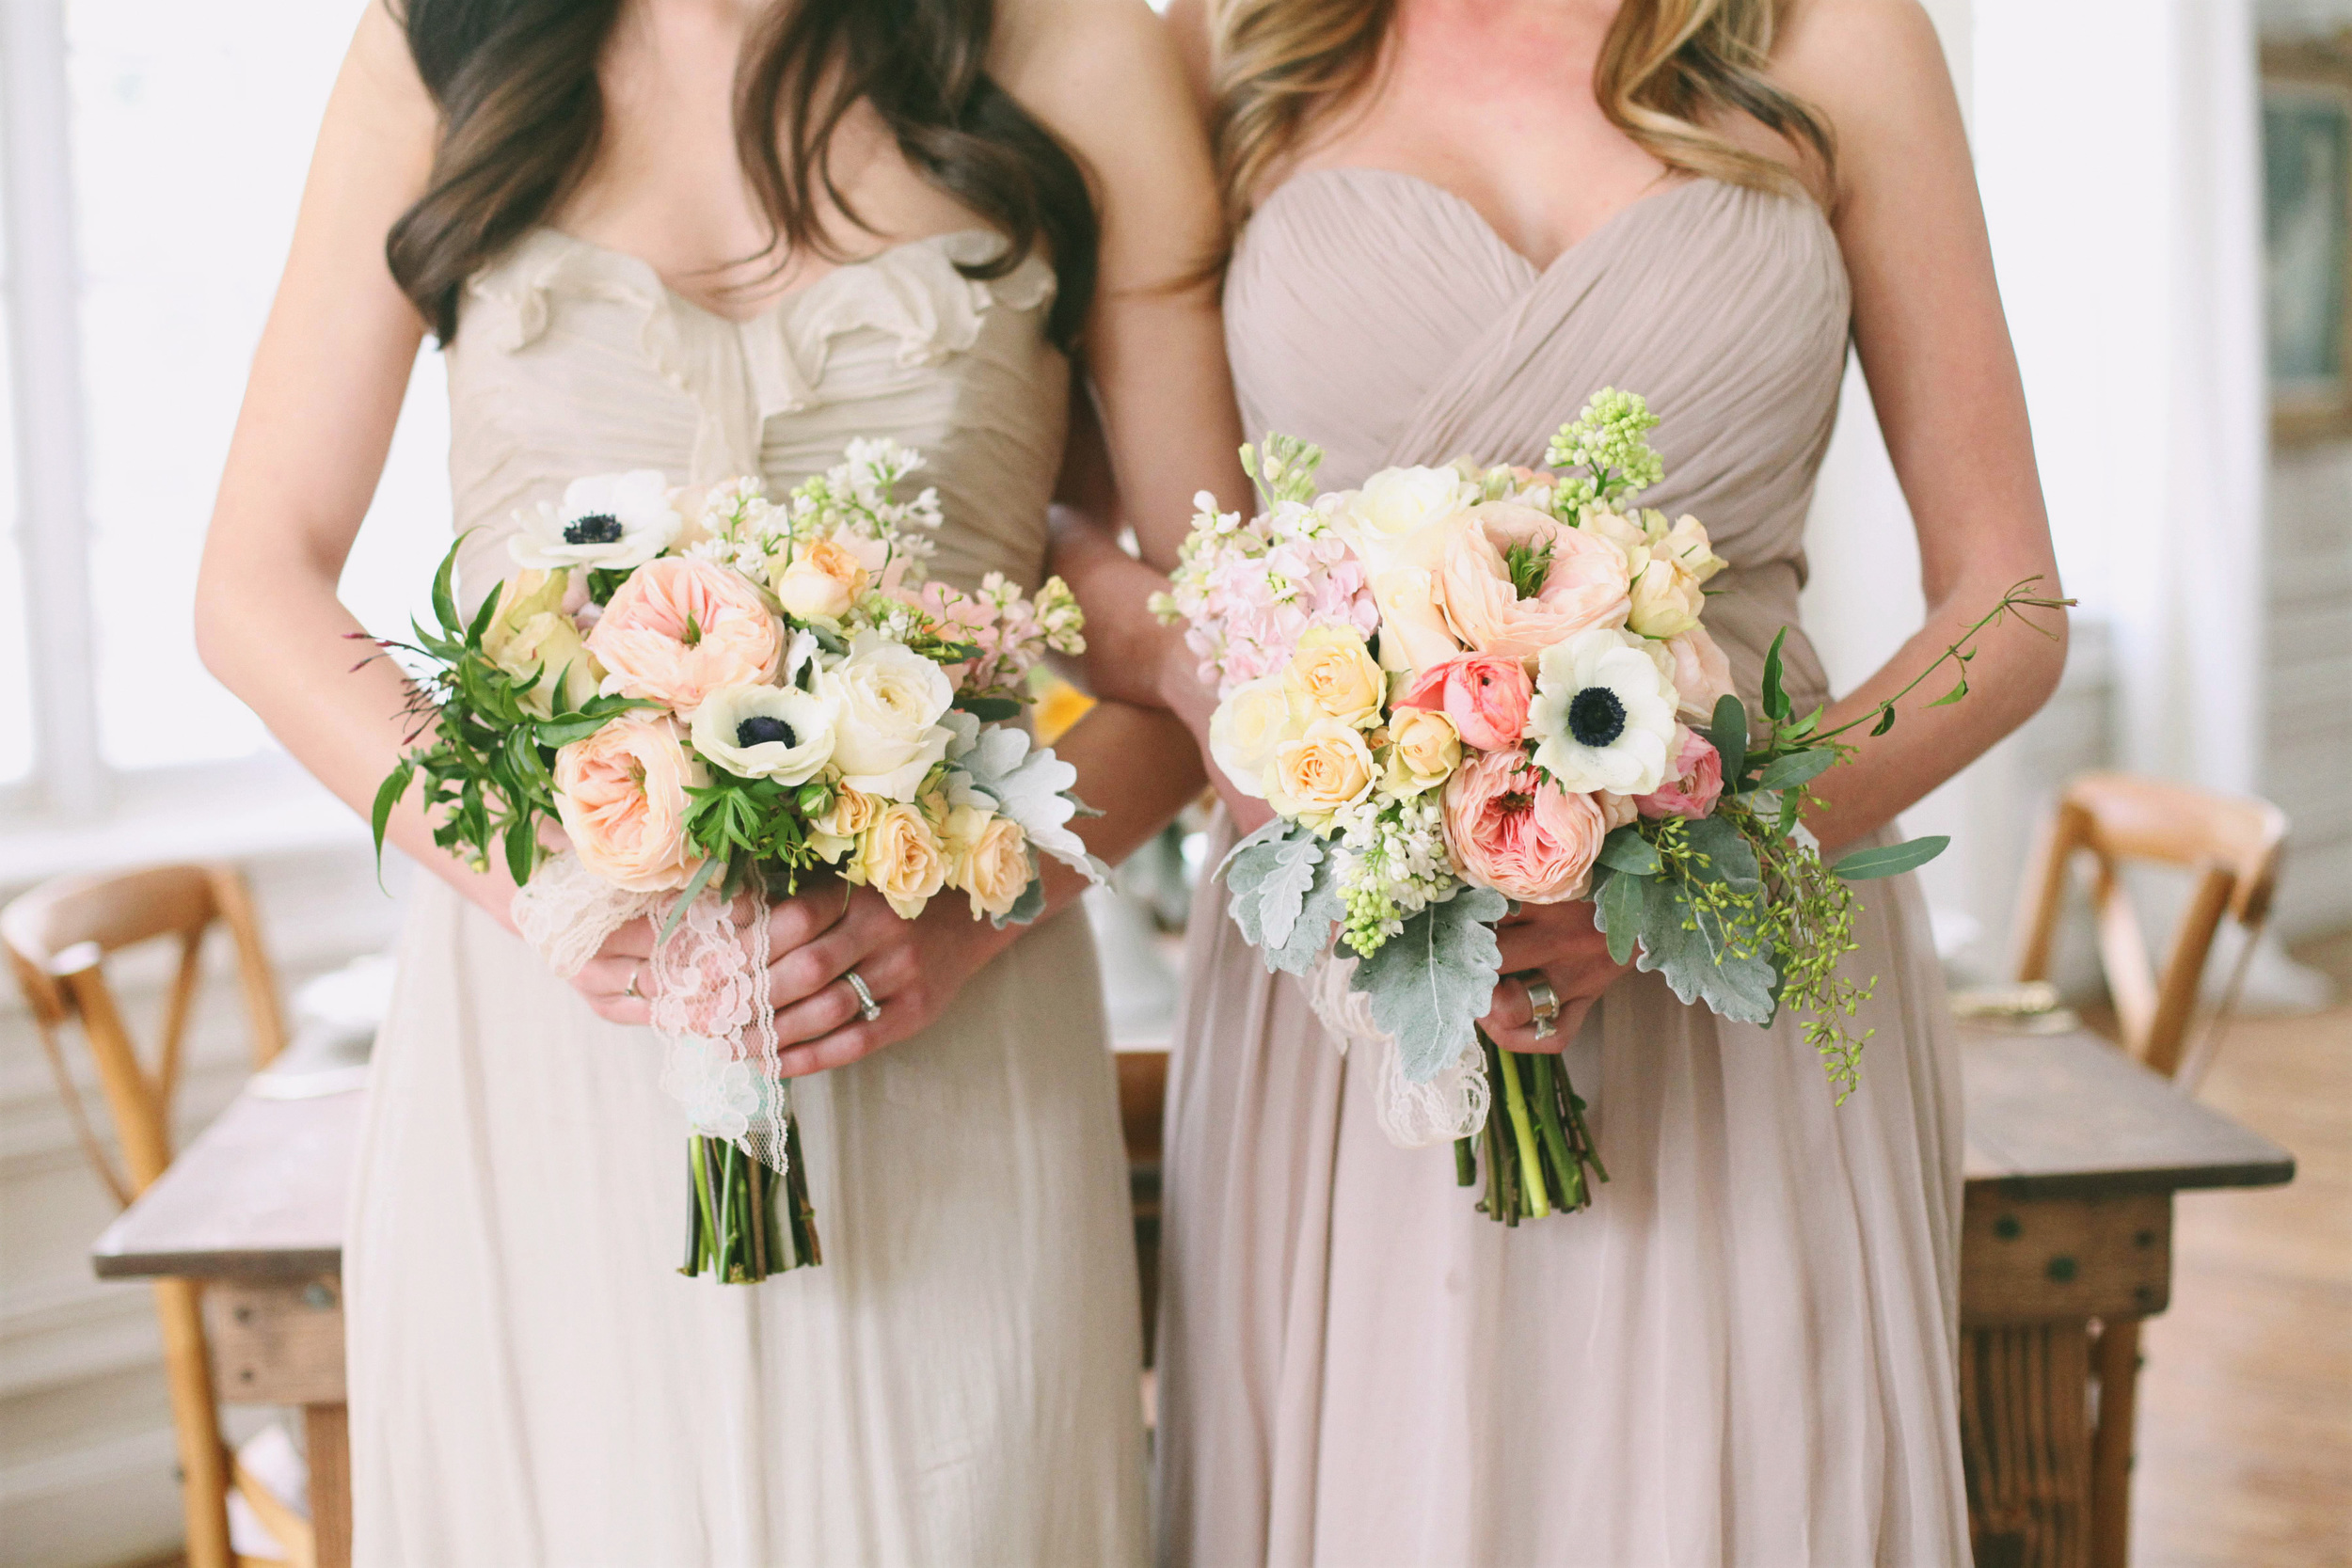 Spring Chateau Wedding Inspiration | Michelle Leo Events | Jacque Lynn Photography | Utah Wedding Design and Planning